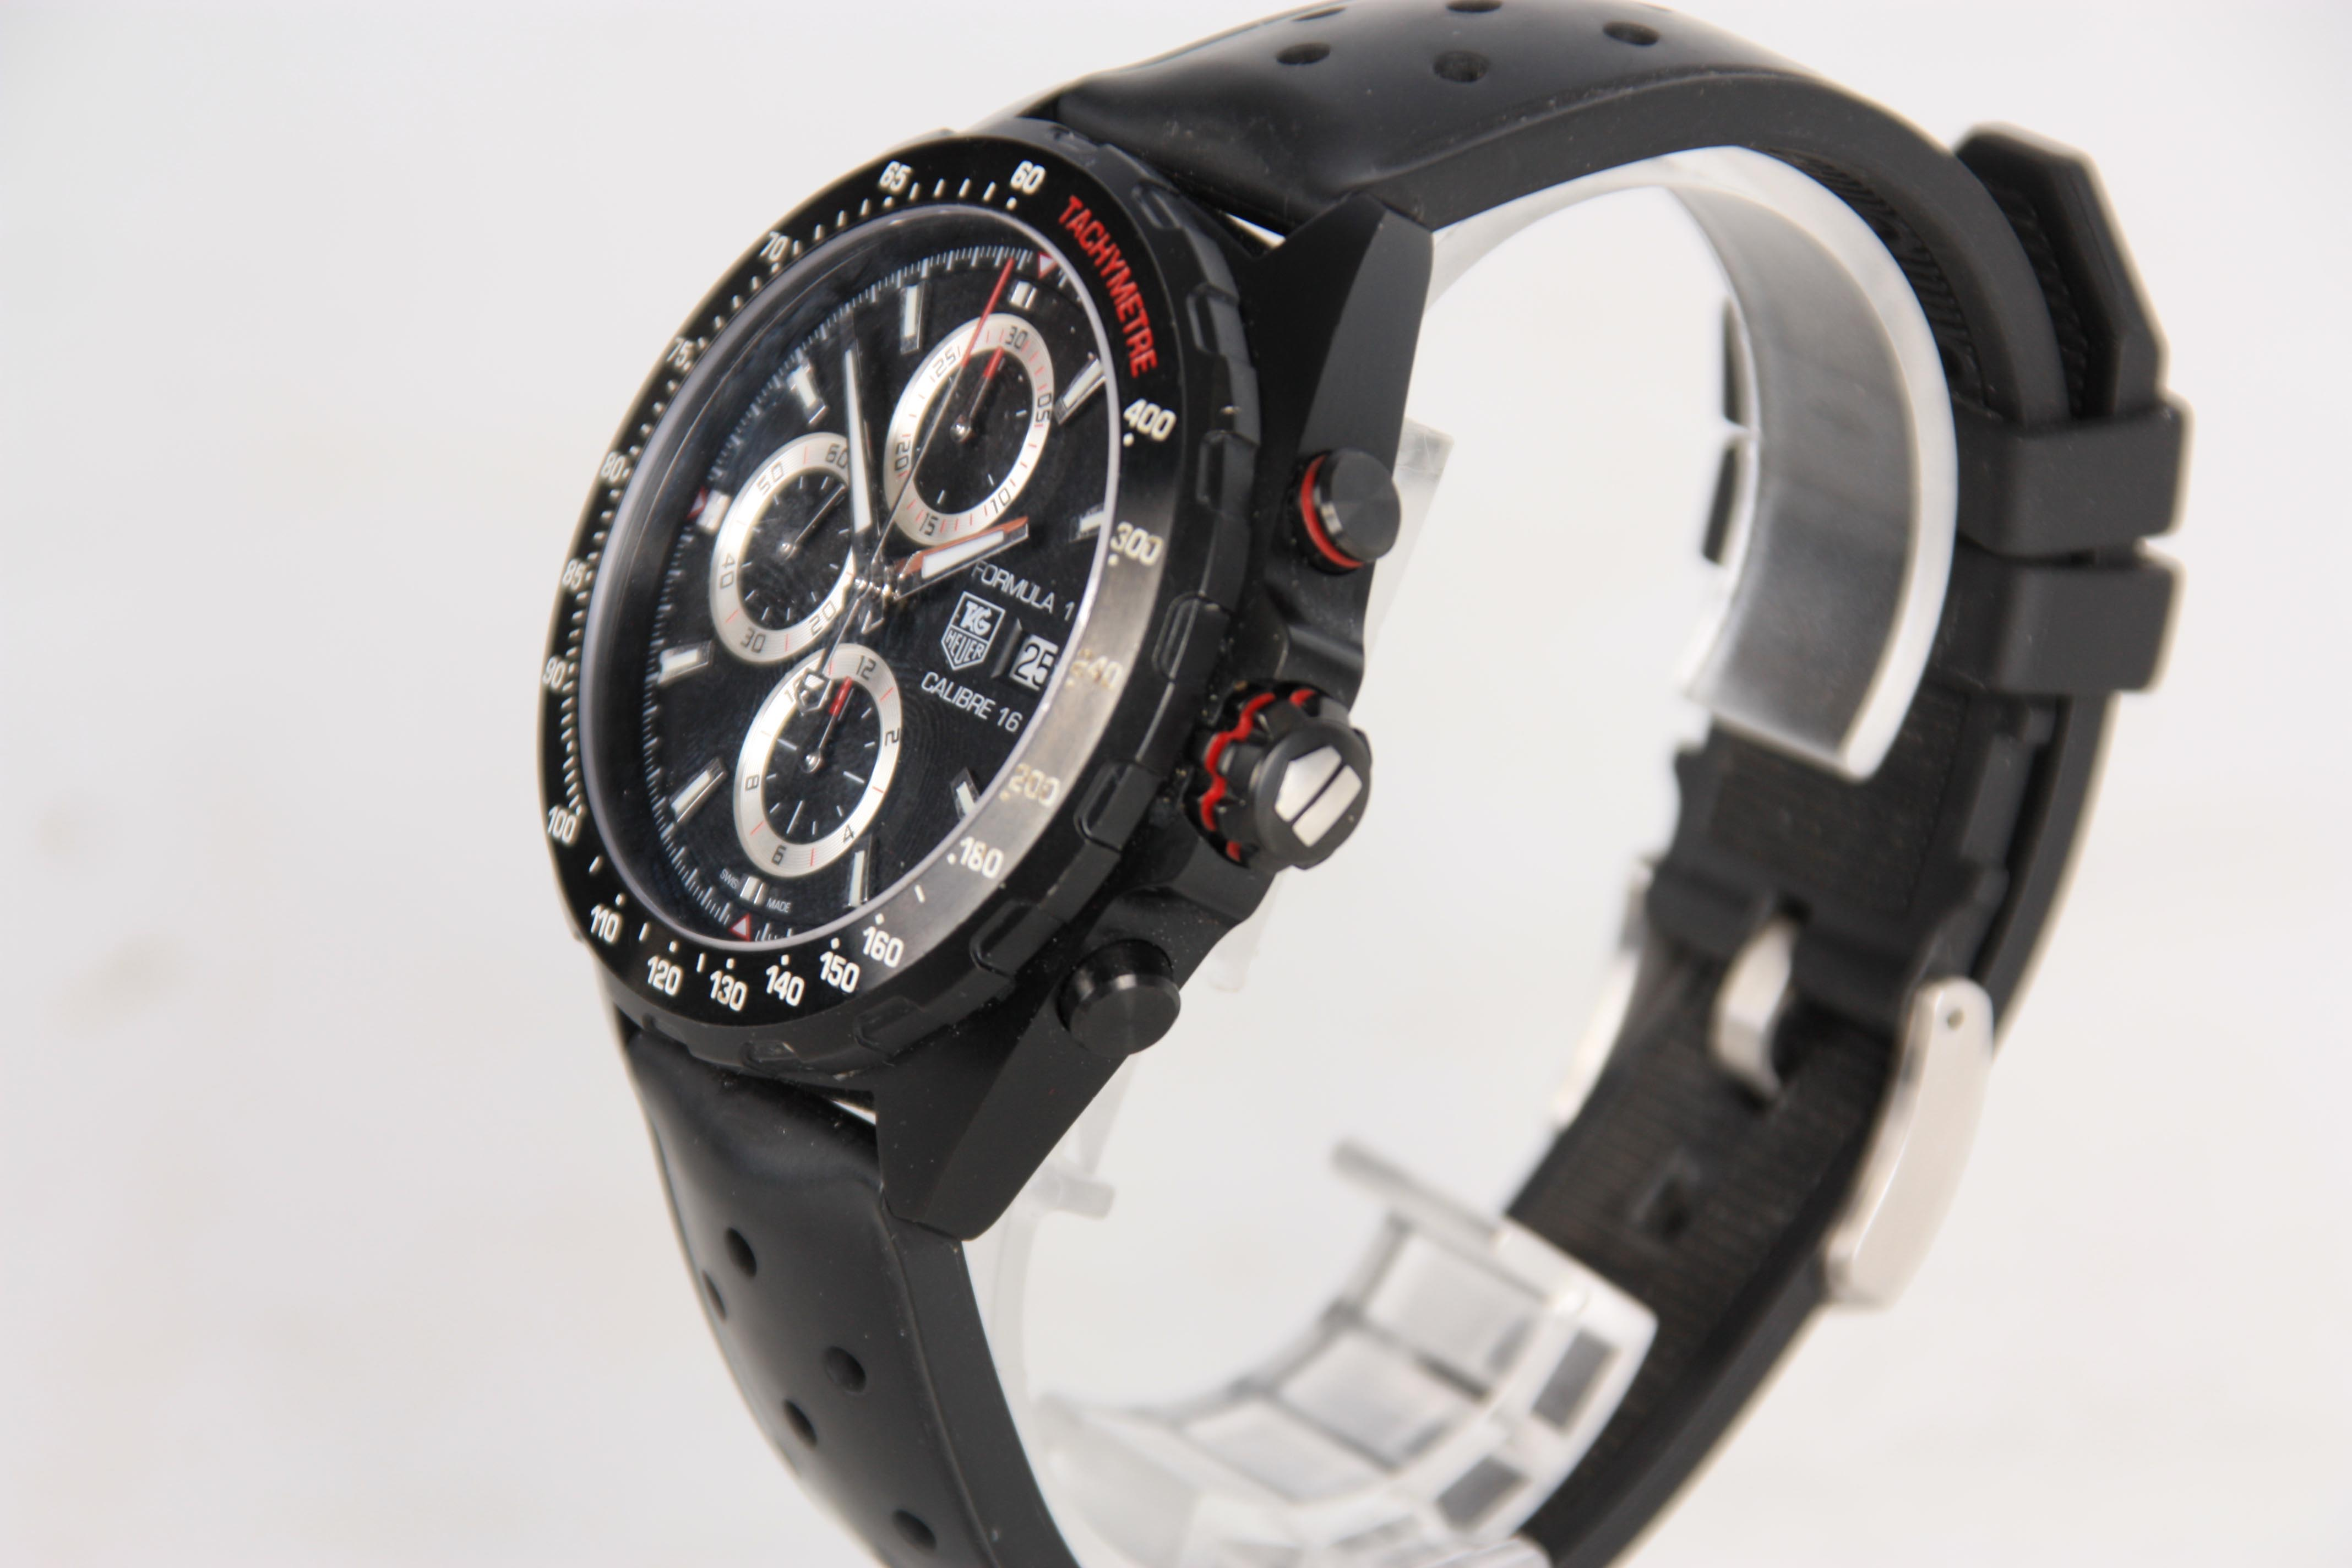 A GENTLEMAN'S TAG HEUER FORMULA 1 CALIBRE 16 AUTOMATIC CHRONOGRAPH WRISTWATCH on original rubber - Image 2 of 3